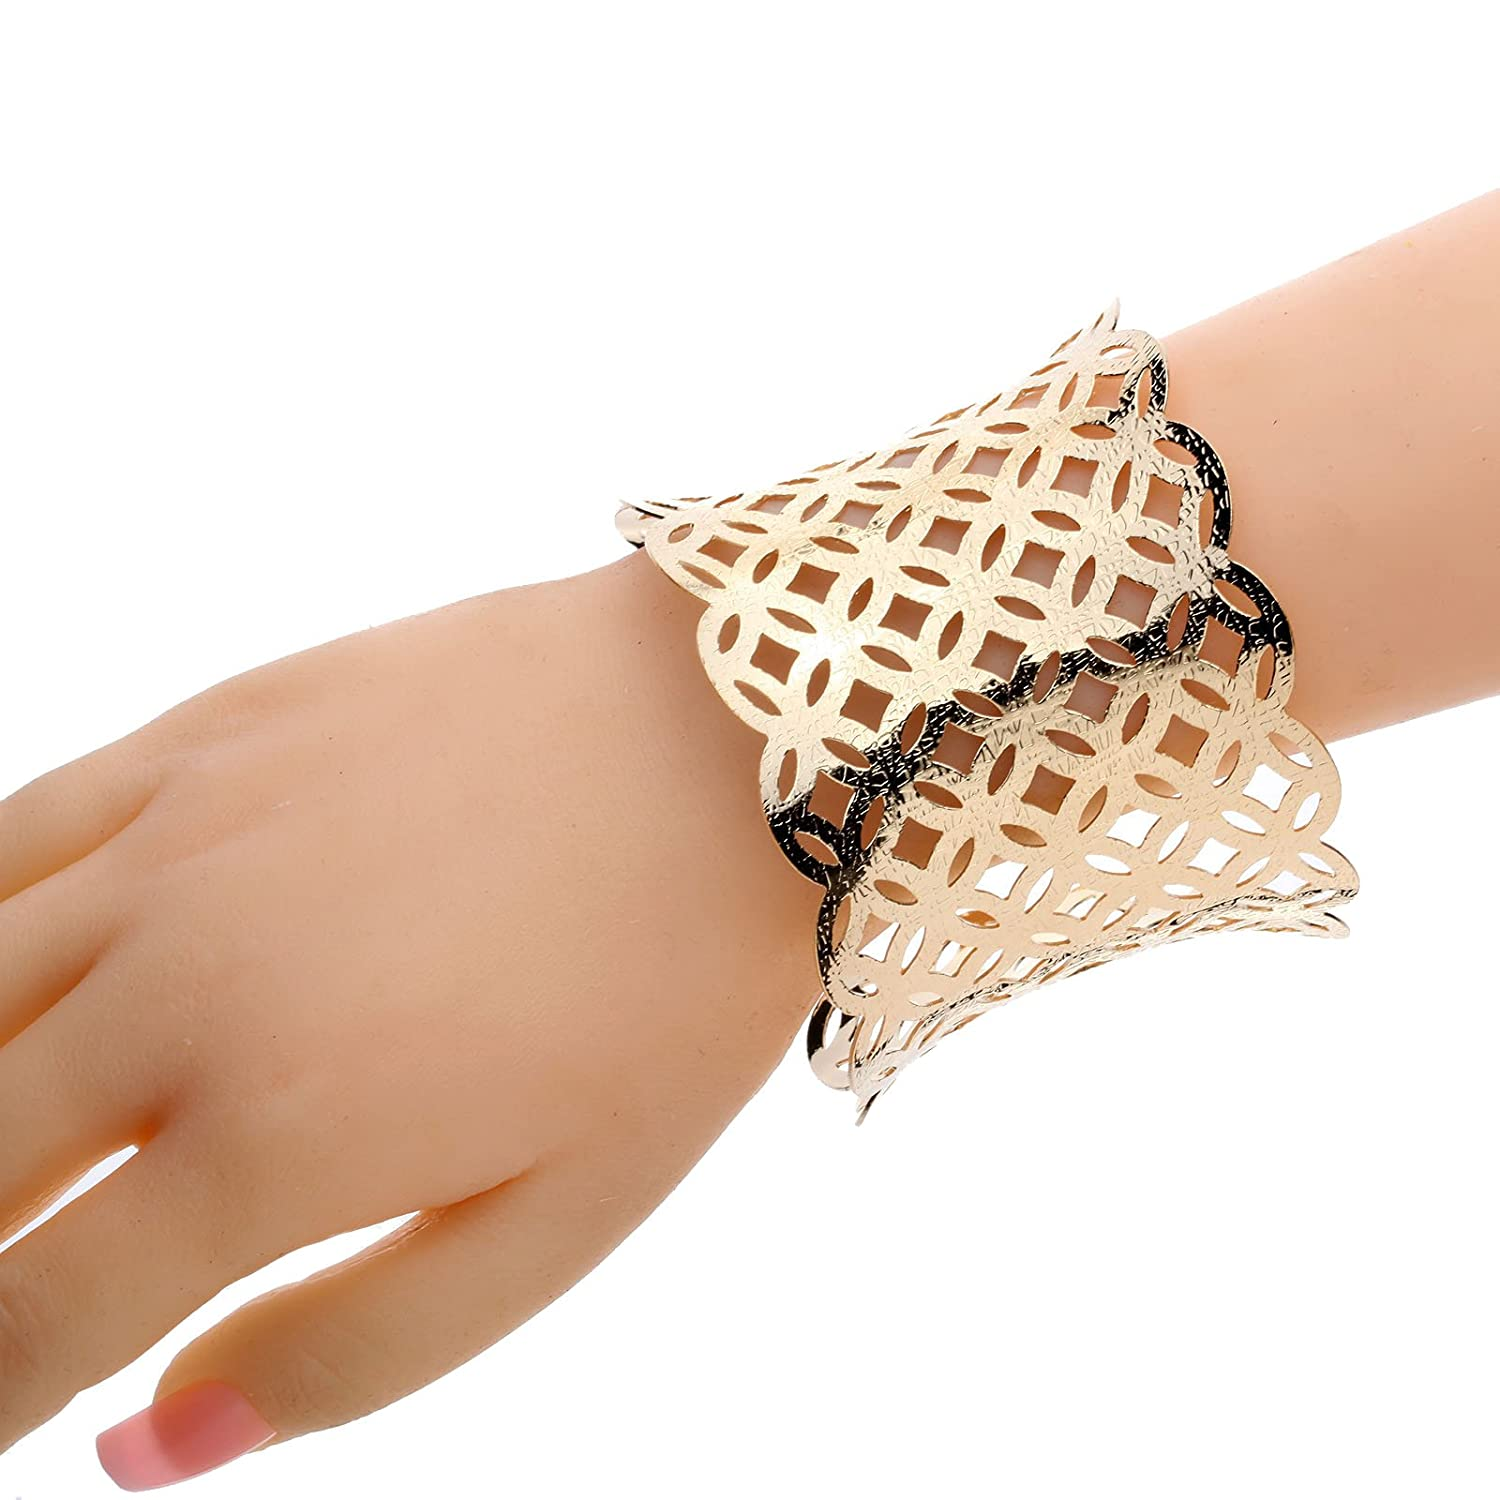 YAZILIND Gold Plated Special Hollow Cuff Bangle Bracelet Wide 1.2in Punk Style XGTW6N